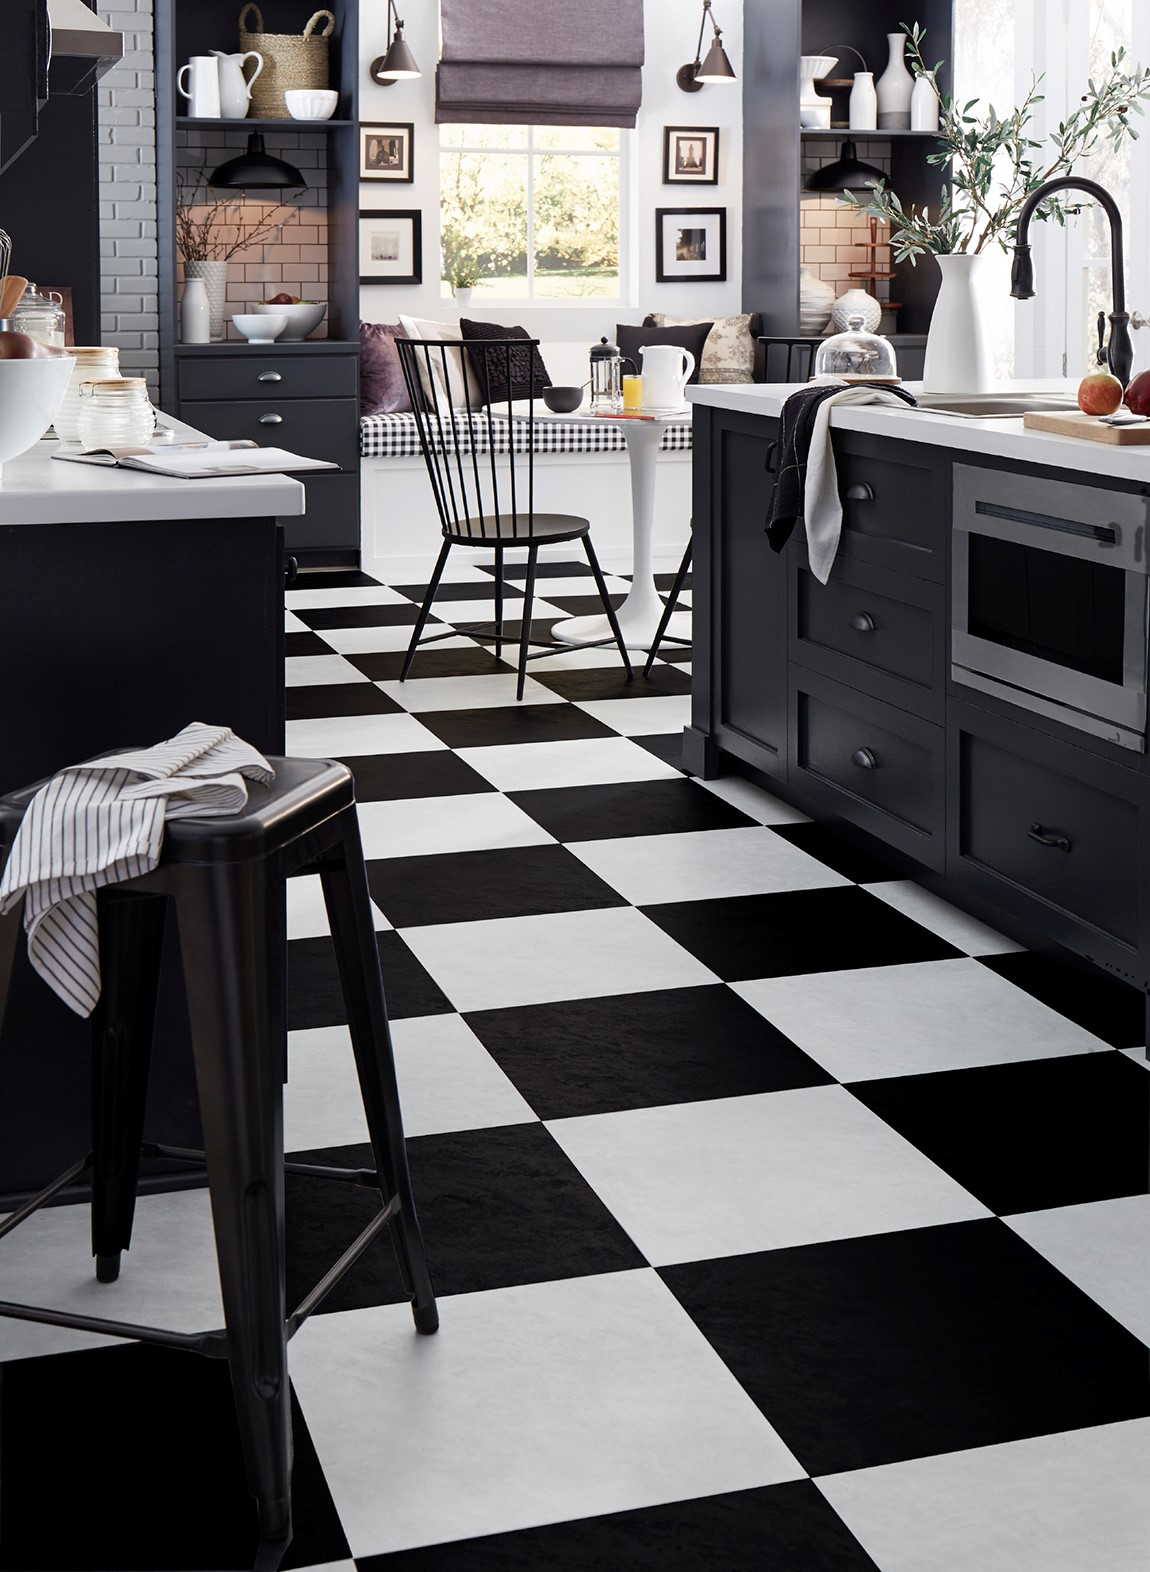 kitchen with black and white retro tiles